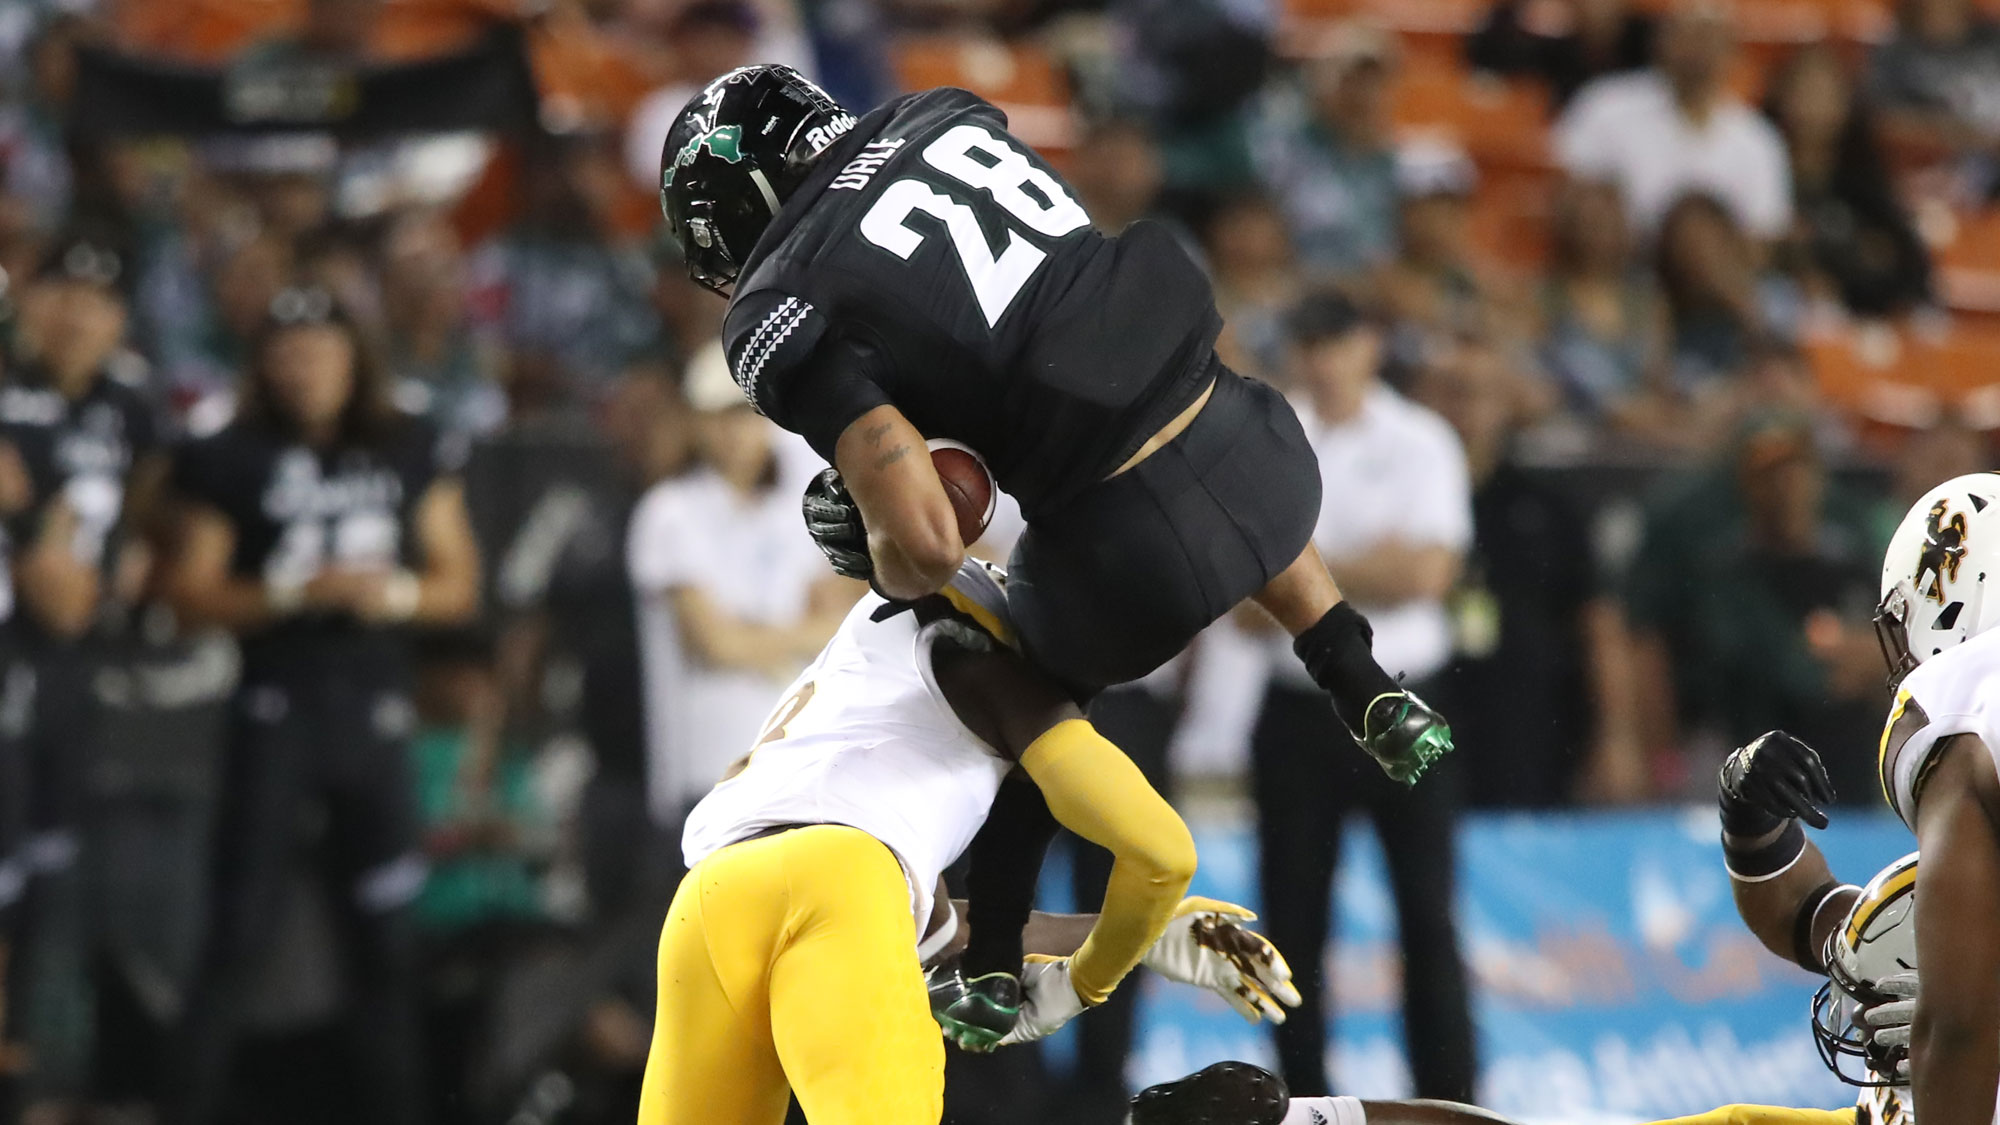 85ad27758af Elijah Dale - Football - University of Hawai'i at Manoa Athletics